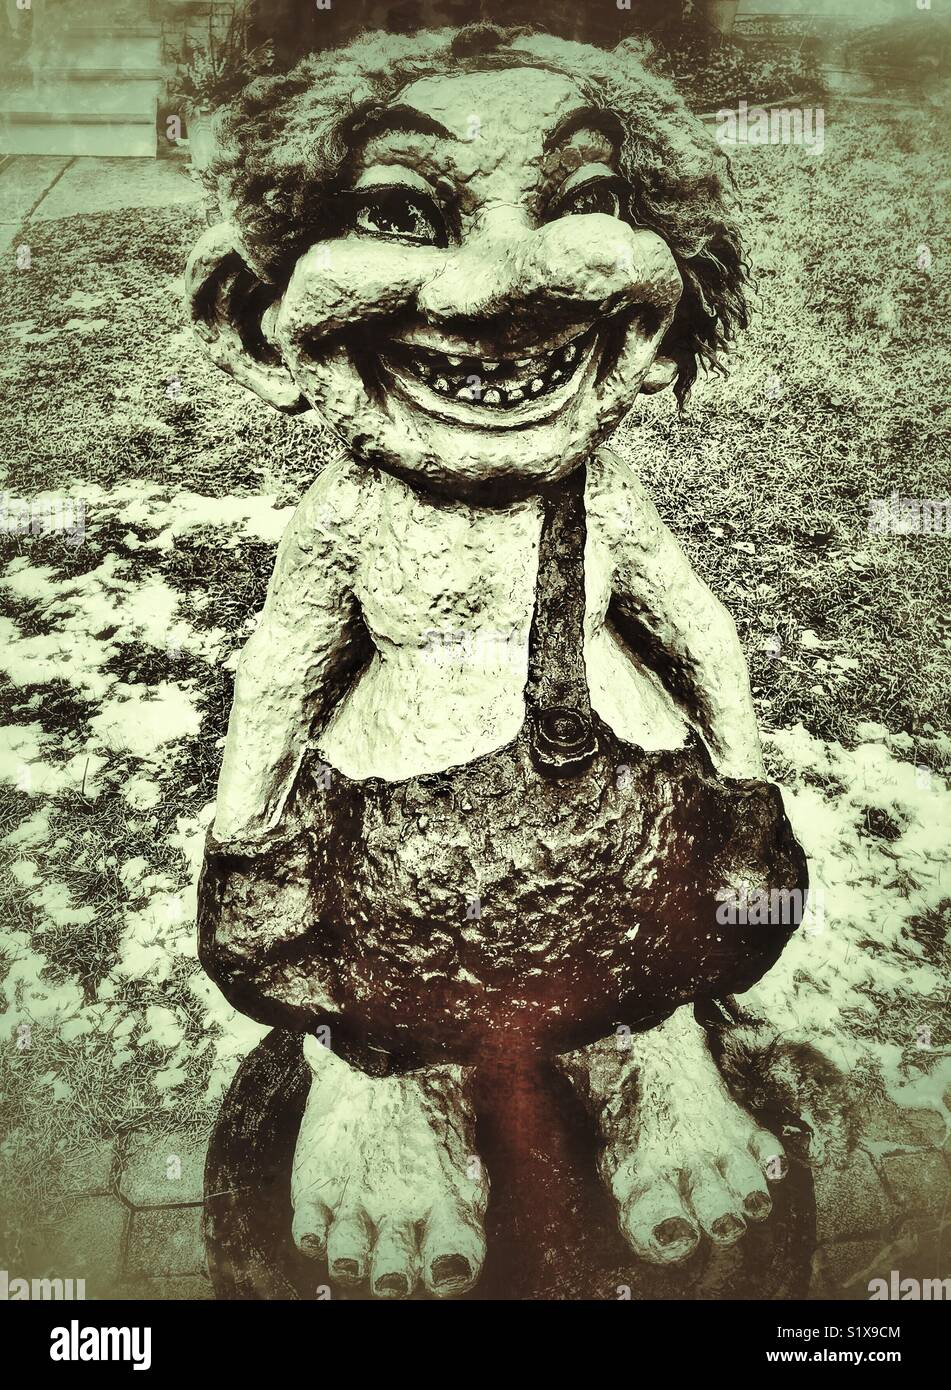 Troll statue with suspenders, Mount Horeb, WI - Stock Image